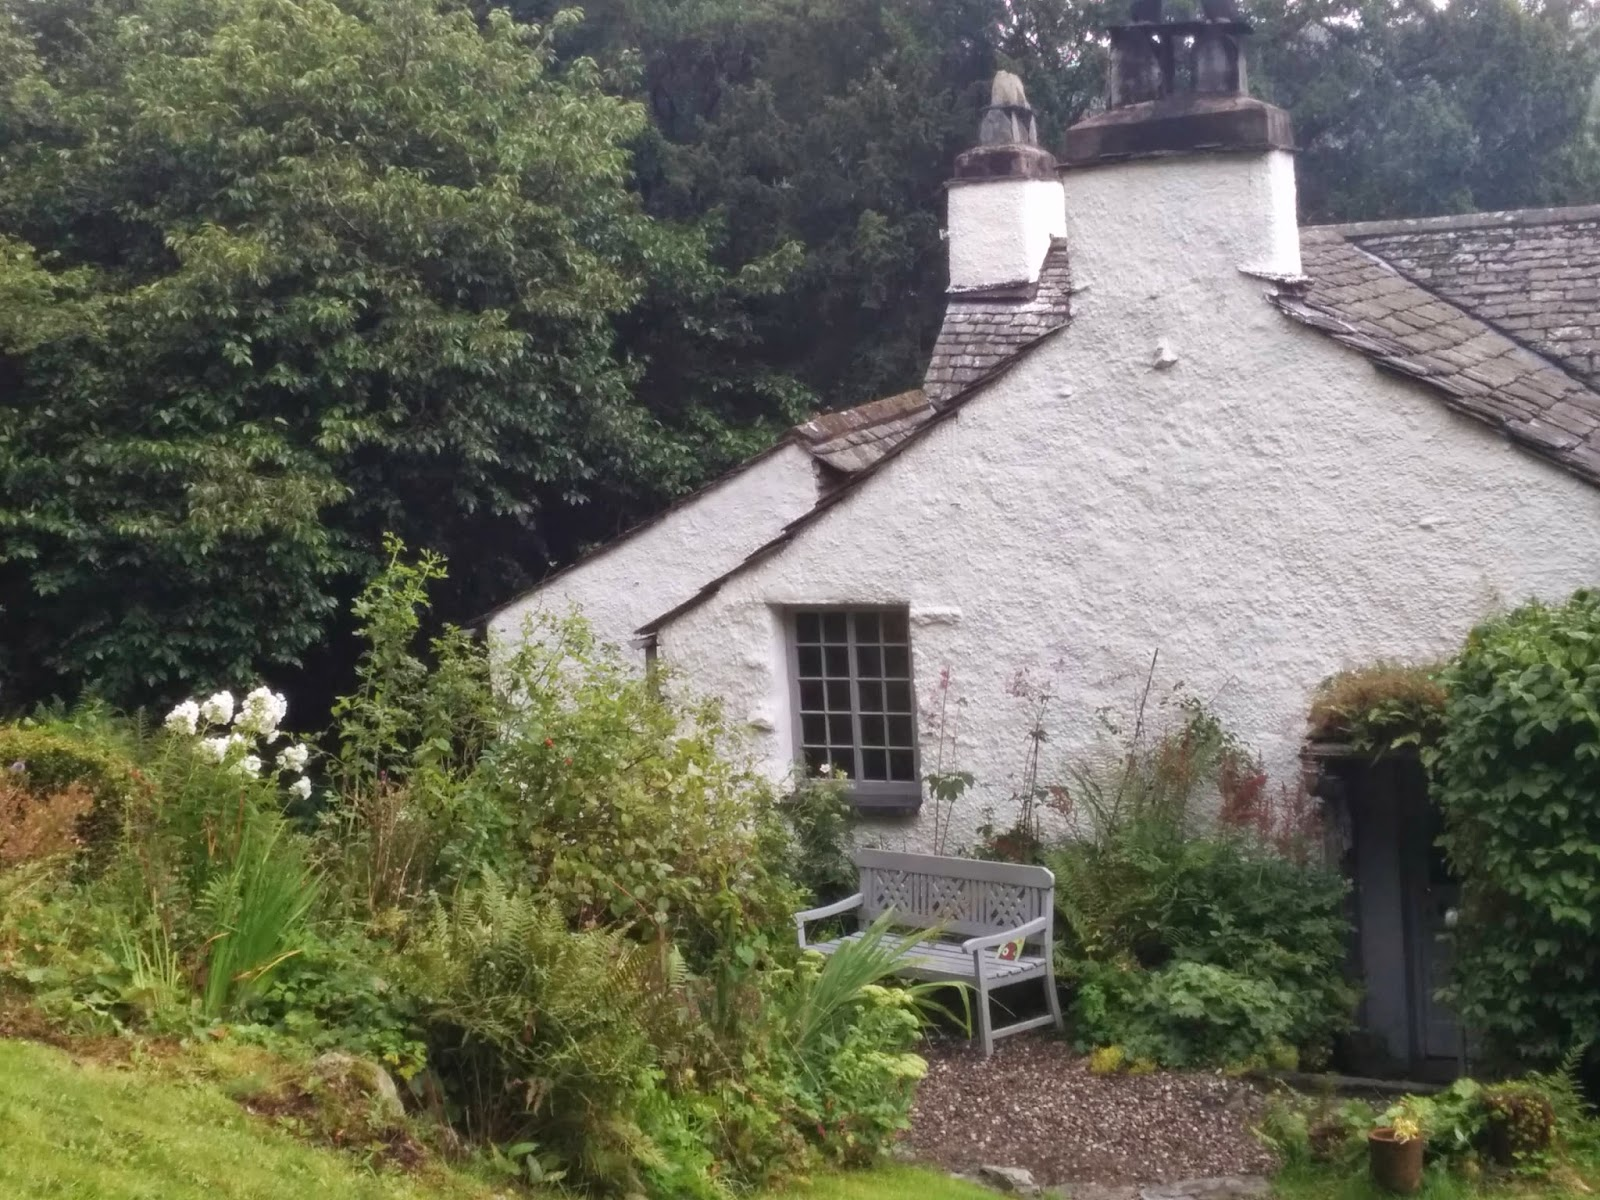 Wordsworth's garden of Dove Cottage